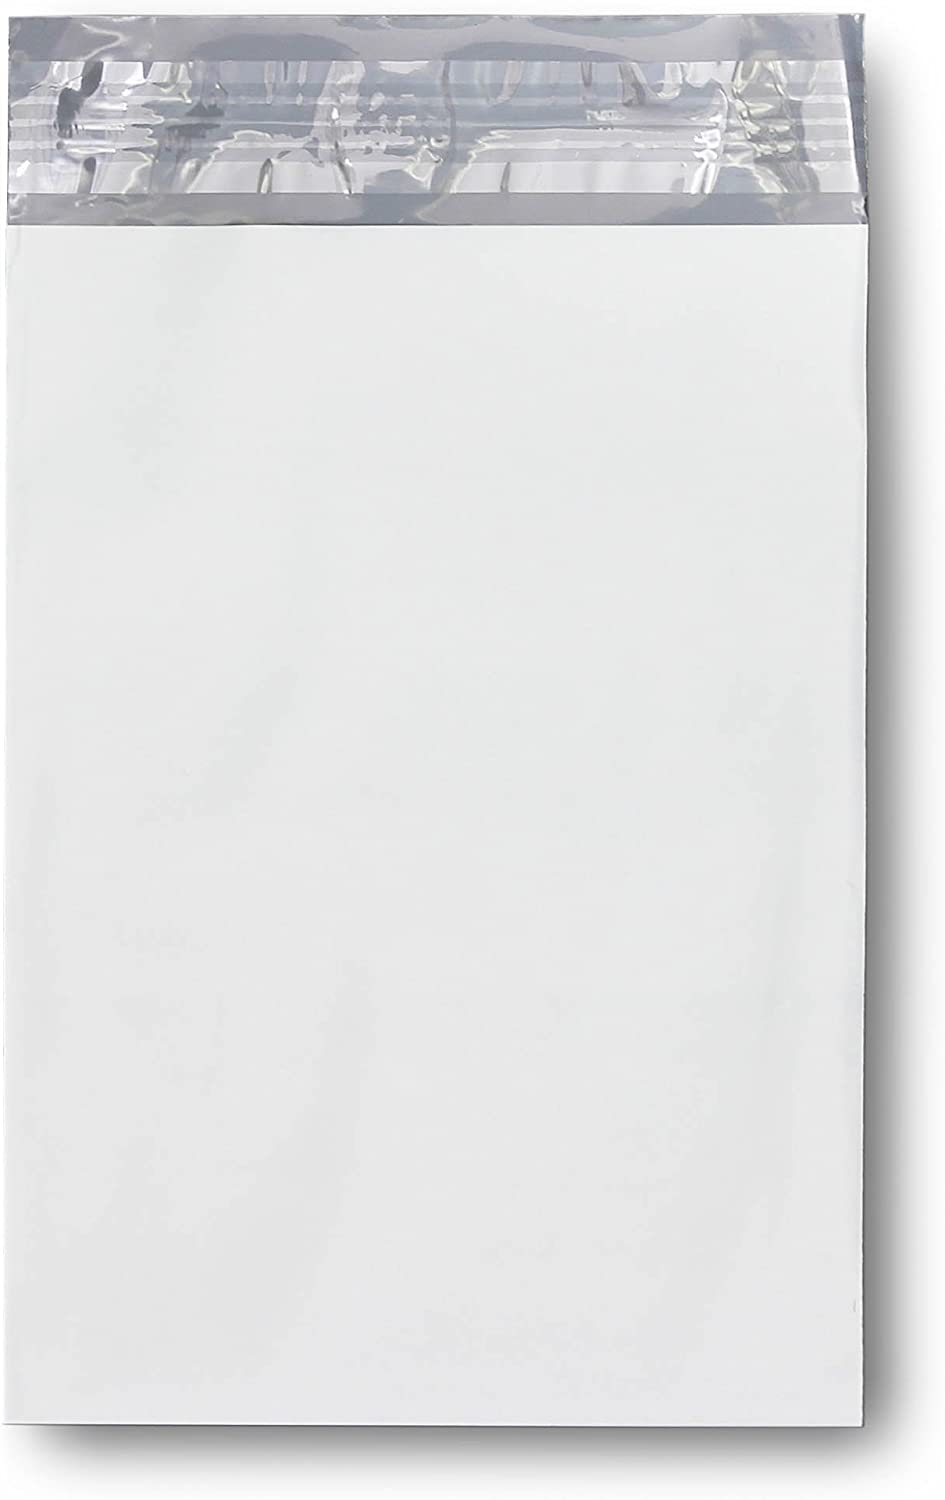 White, 10x13 Pack of 1000 KKBESTPACK 10x13 Poly Mailers Self Sealing Shipping Envelopes CPB68 Waterproof Postal Bags pm